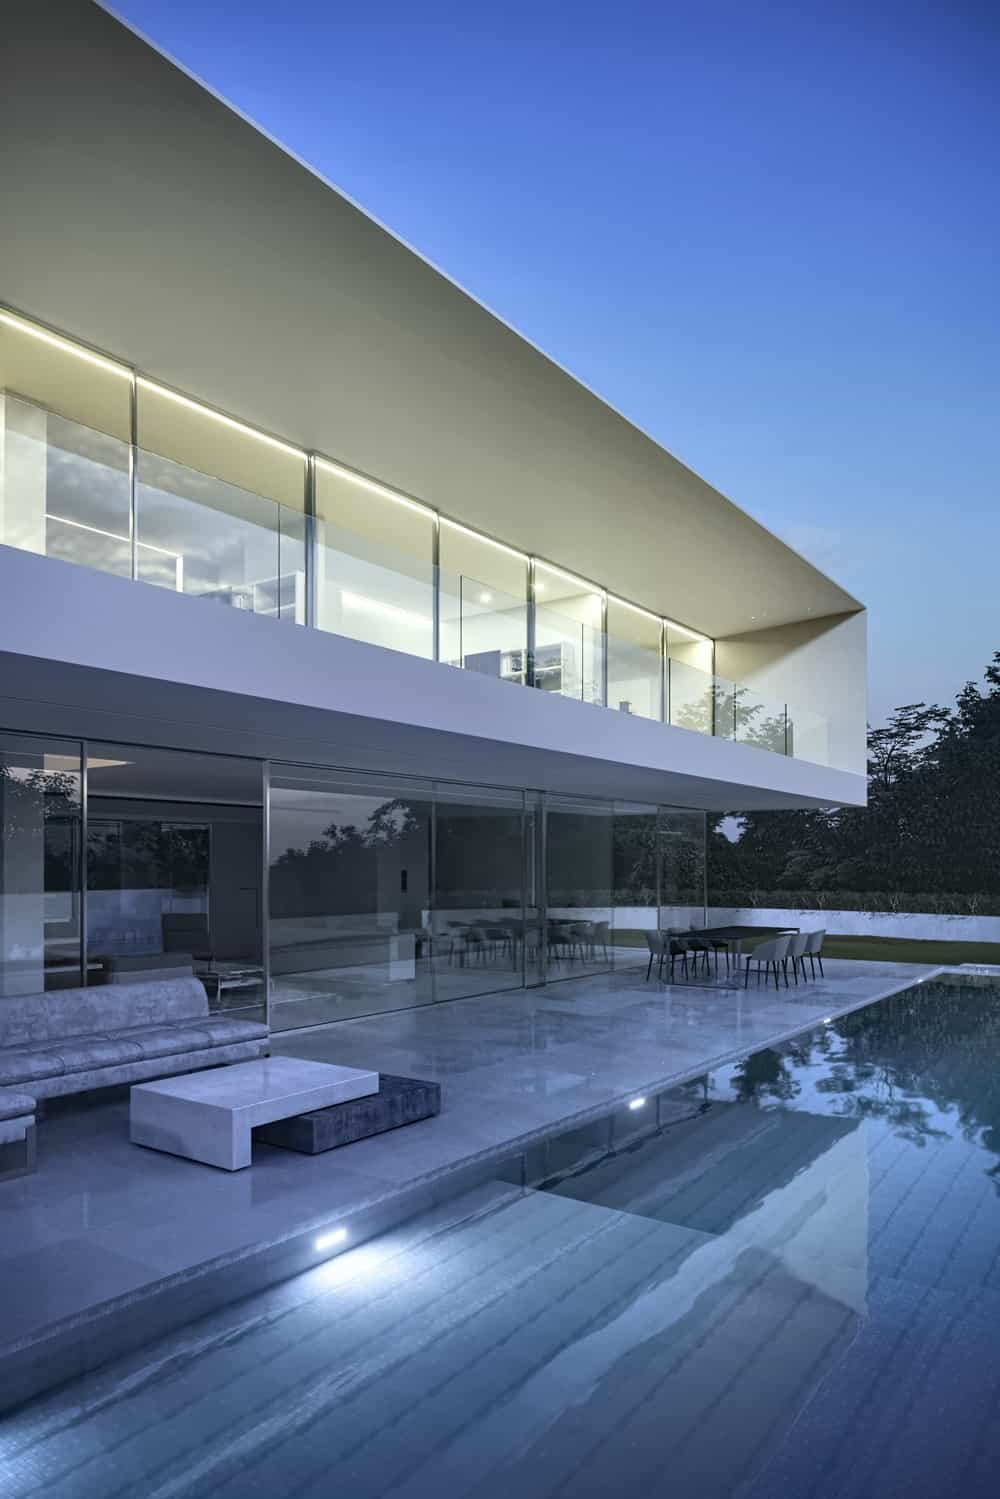 This is a view of the back of the house with a large infinity pool lined with white marble walkways that match the white tones of the house exterior.